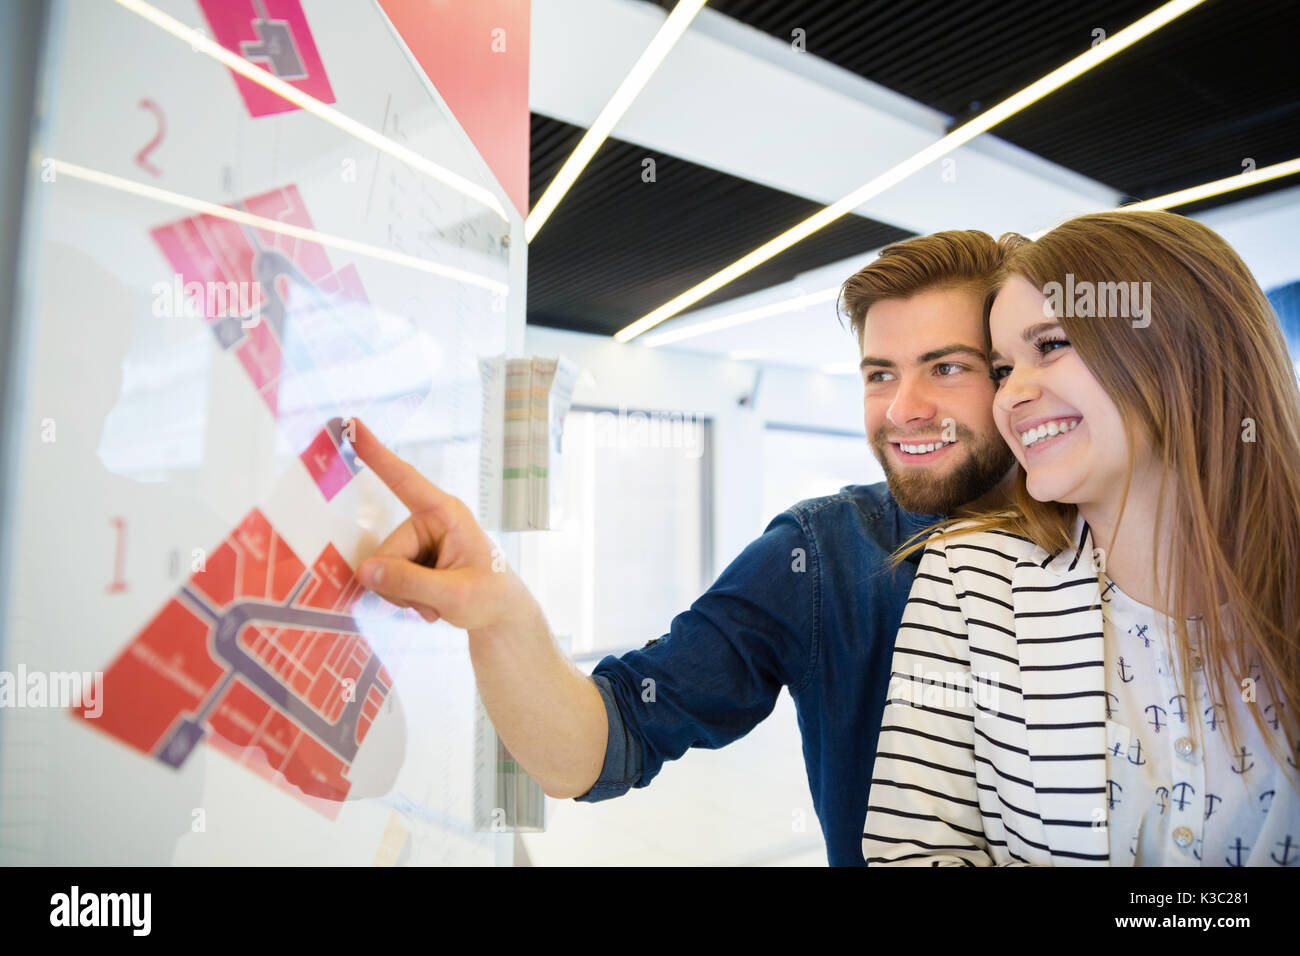 A photo of young, happy couple at the mall. They're checking out how to get to the shop. - Stock Image